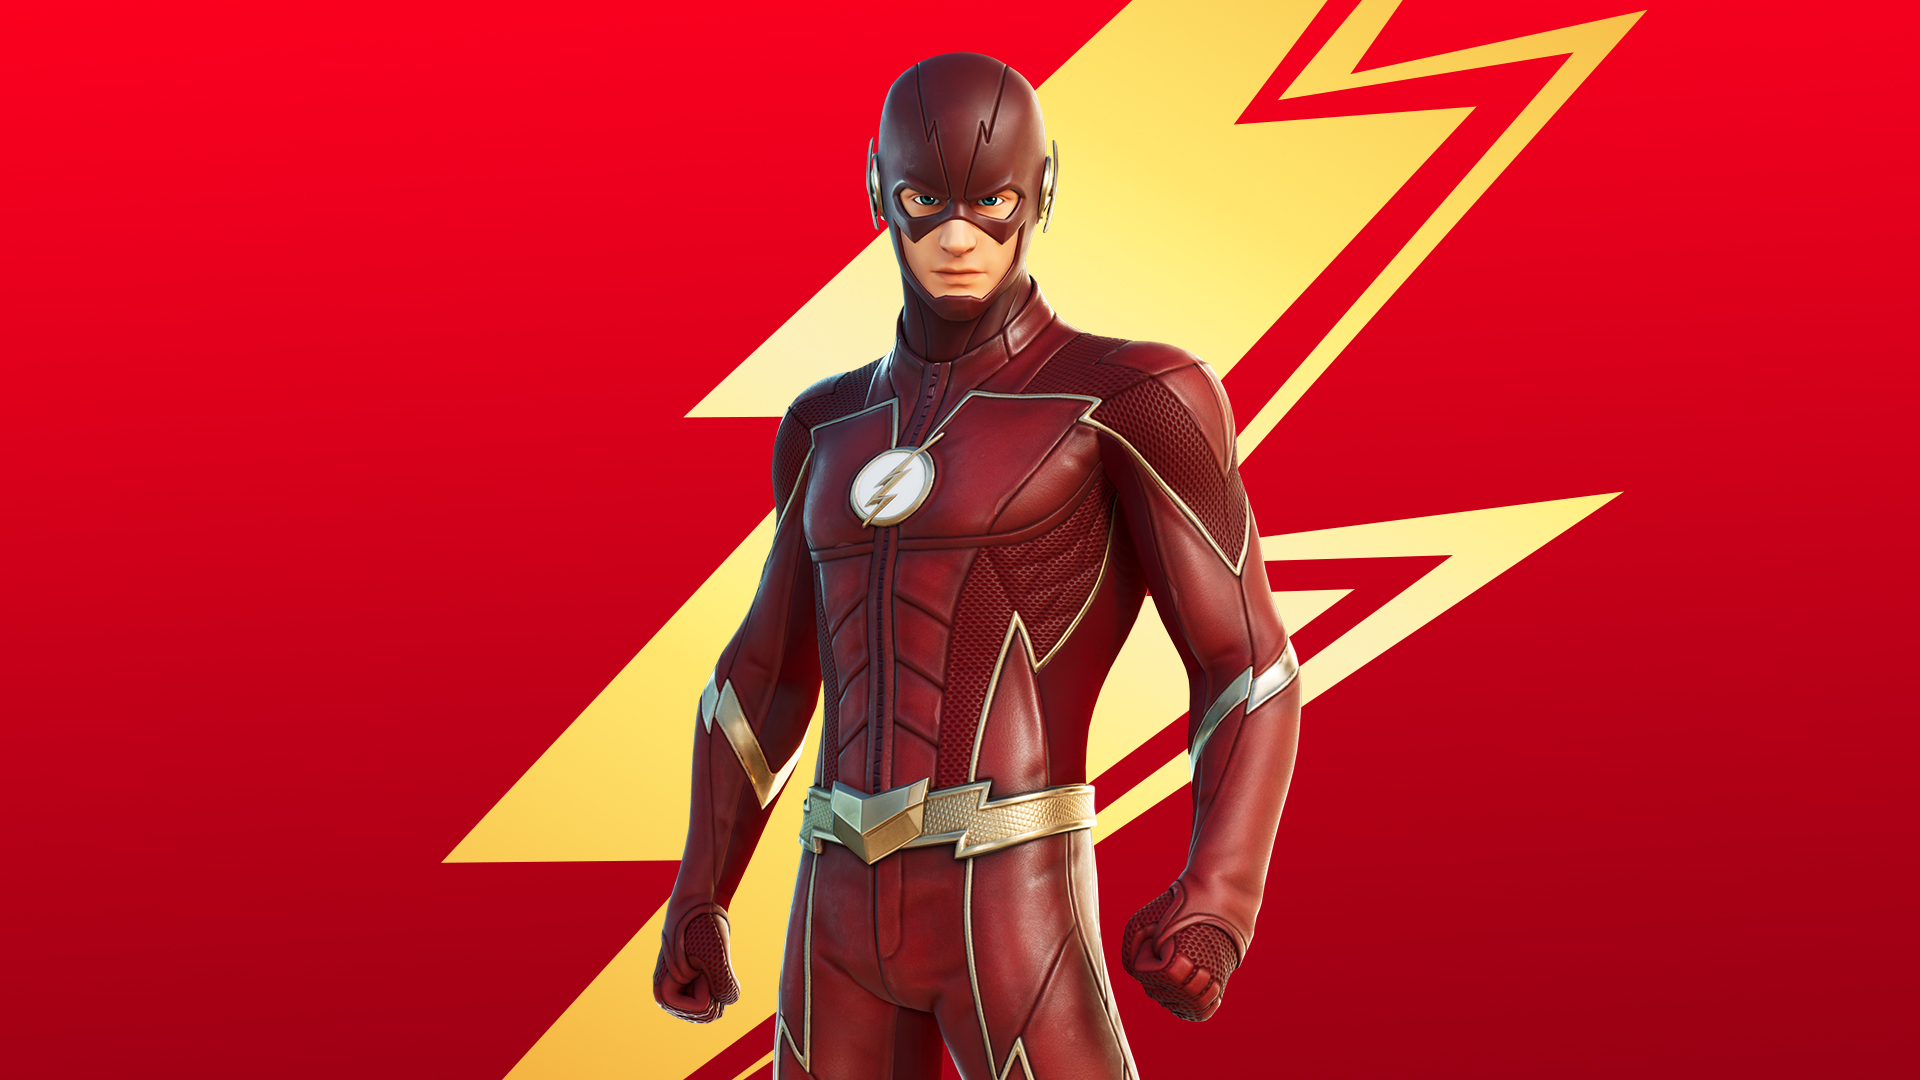 The Flash Cup icon